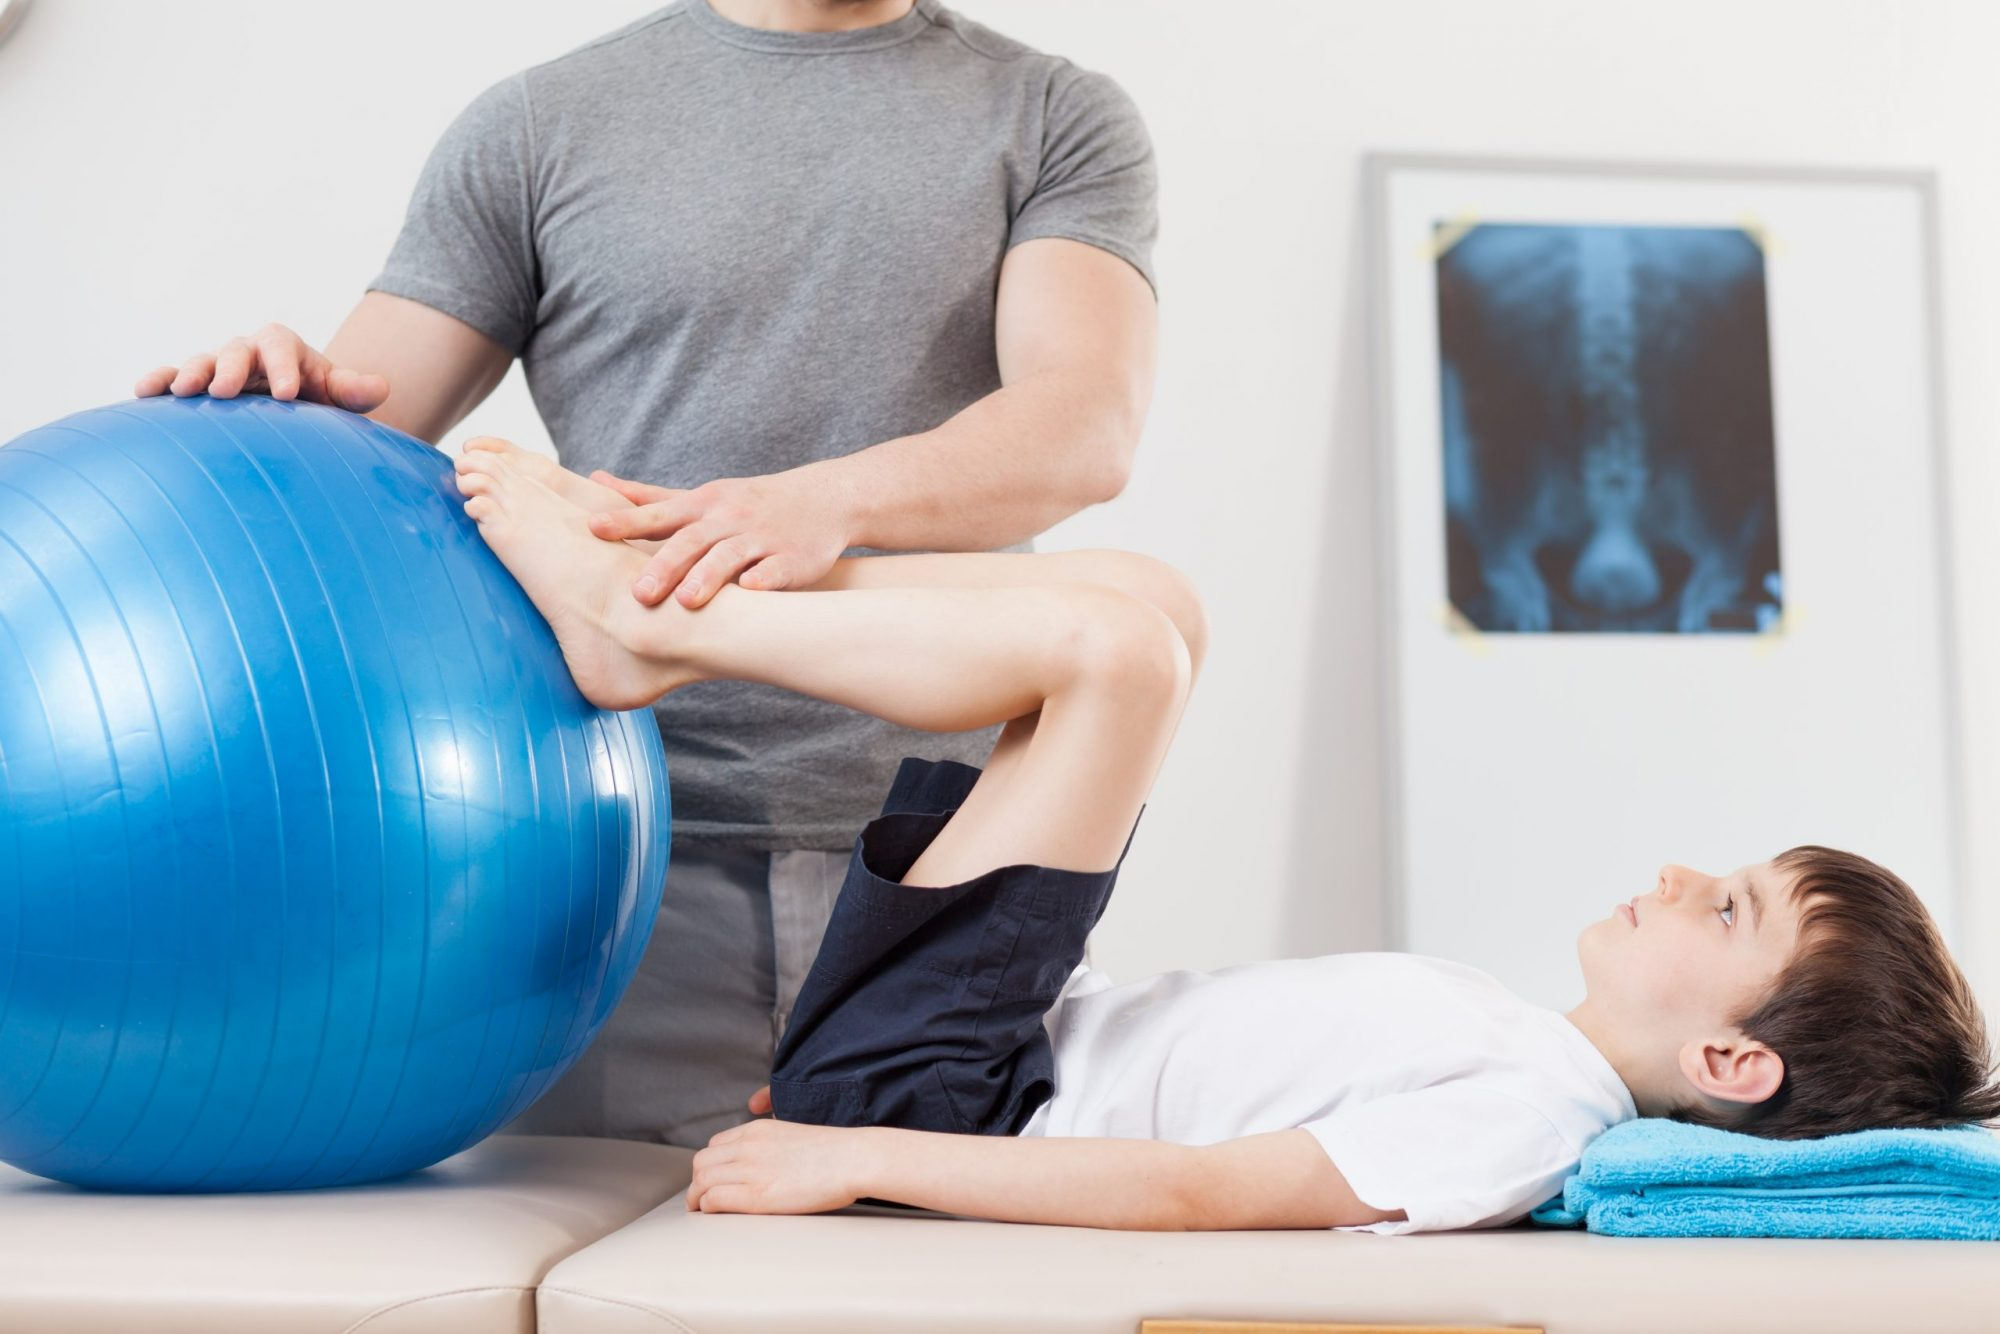 NDIS Registered Physiotherapy